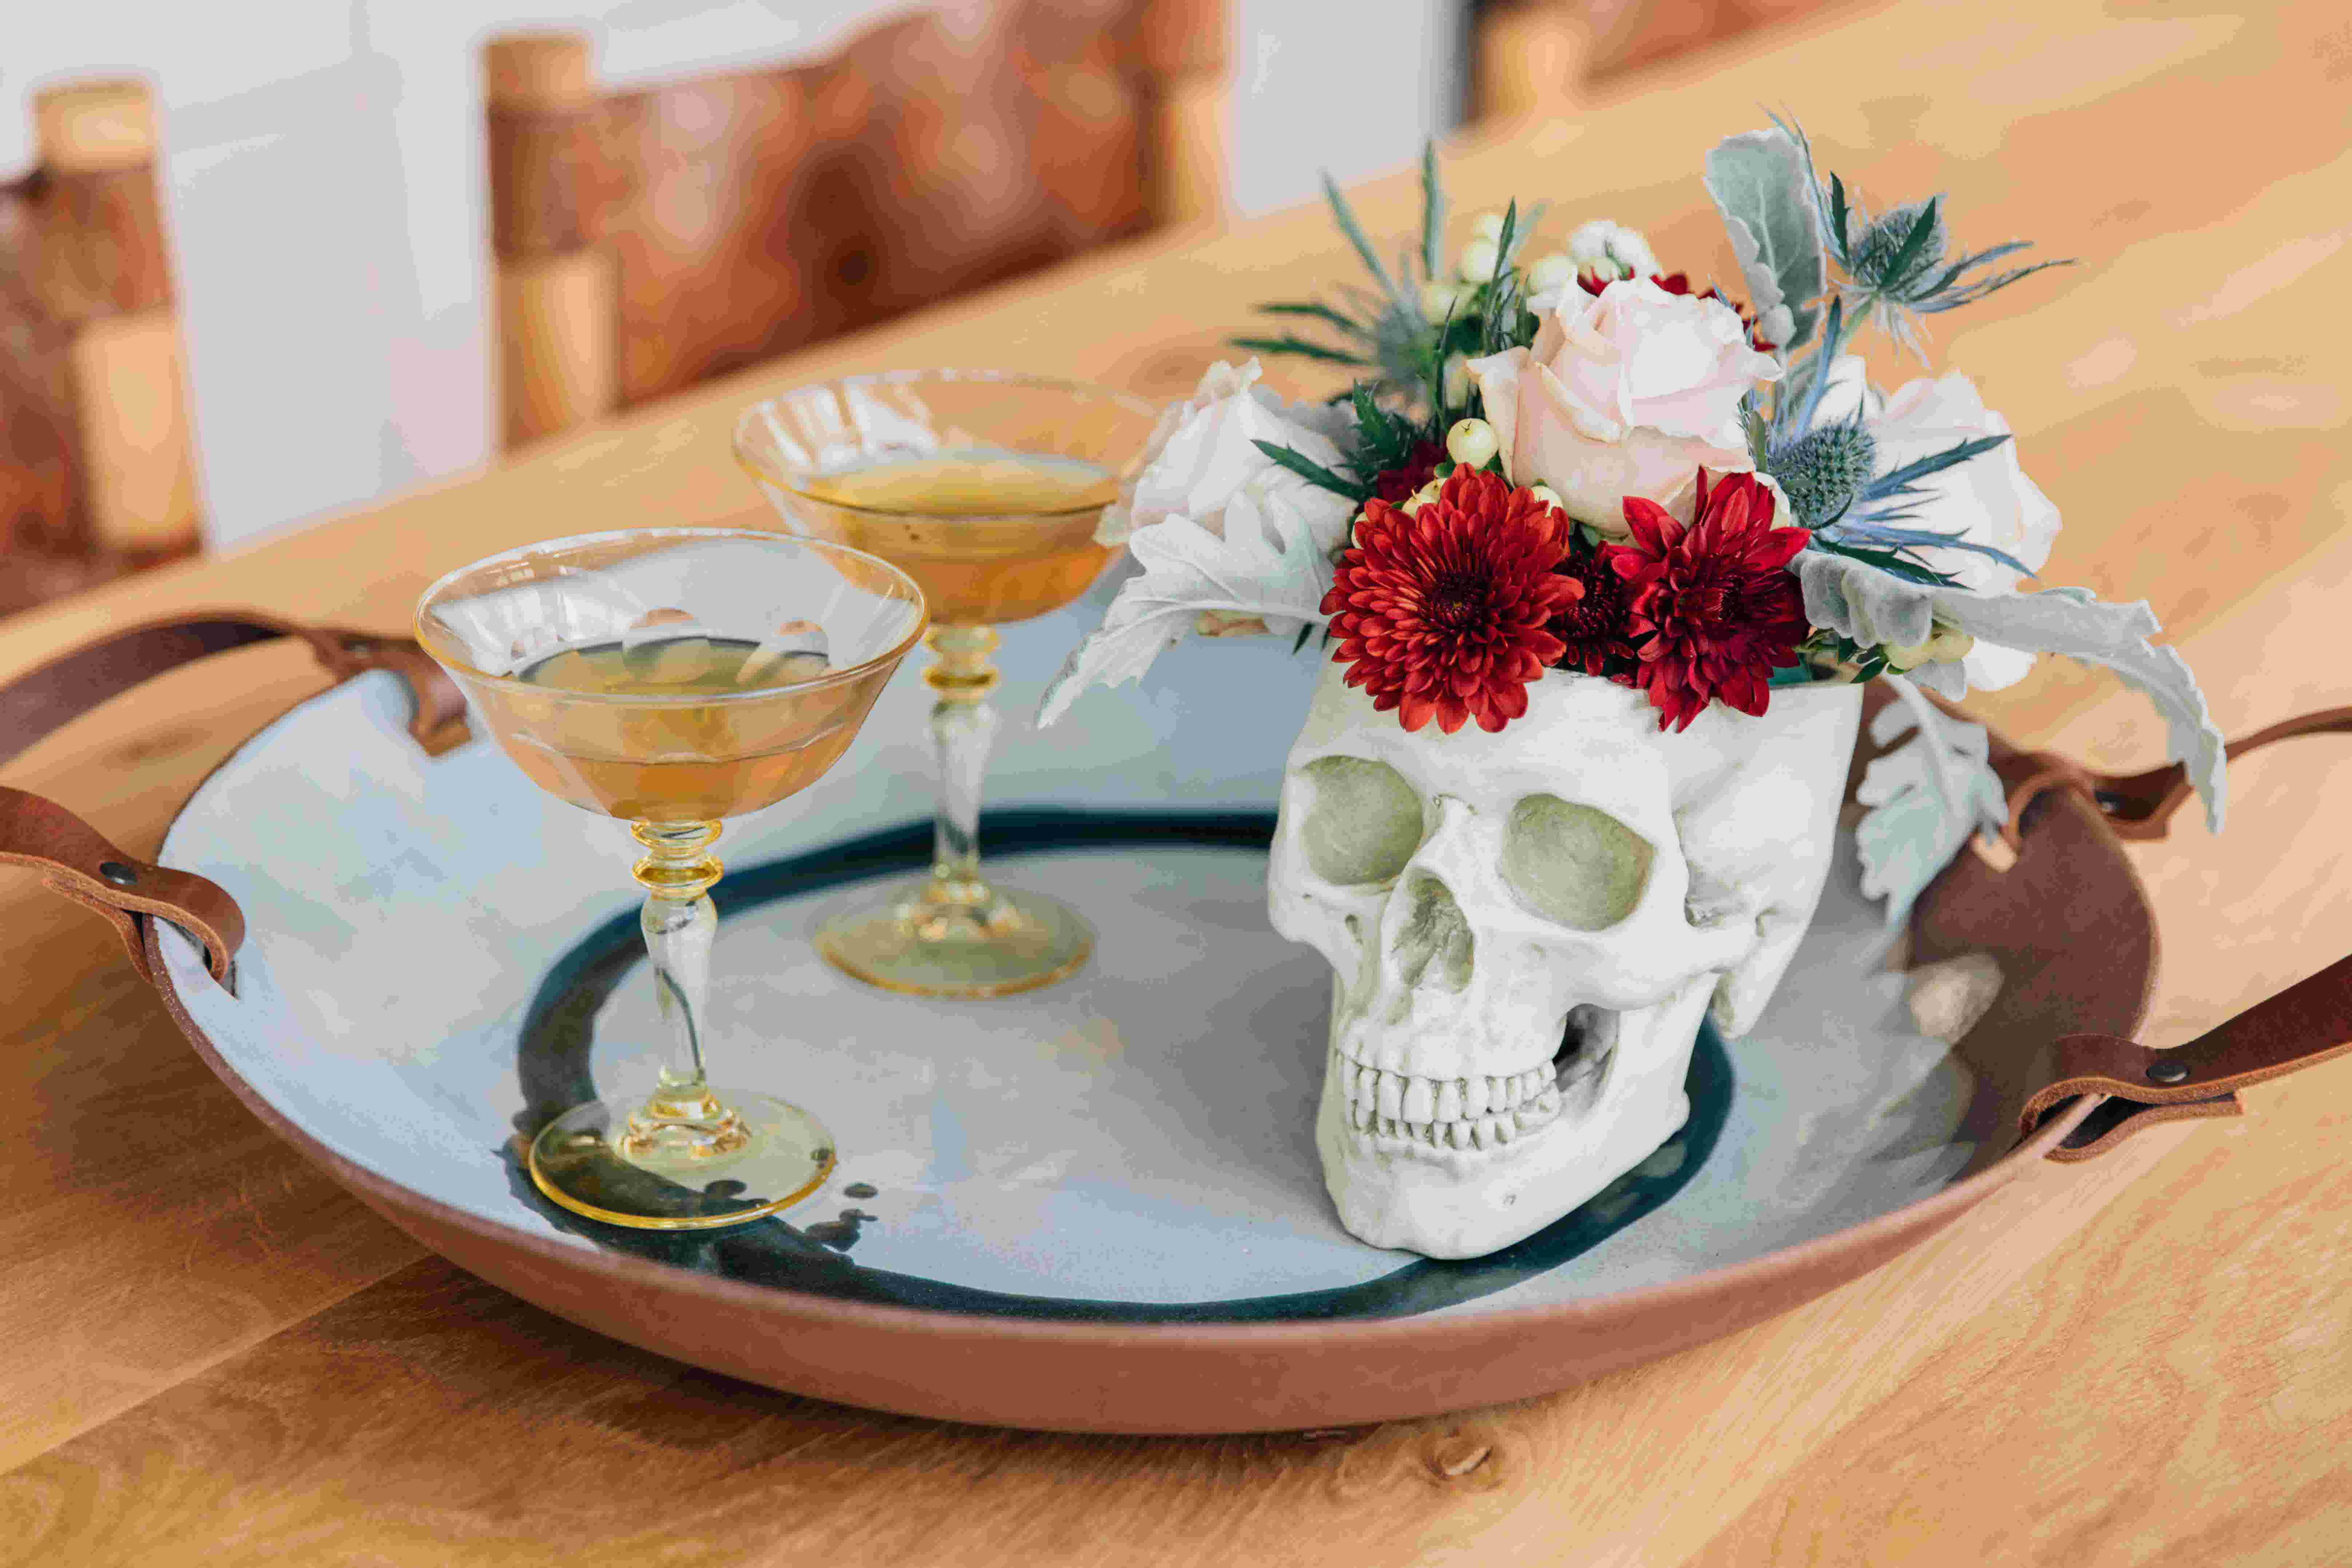 A pair of margaritas in yellow Rialto glasses from Favor on a ceramic tray next to a skull decoration filled with flowers